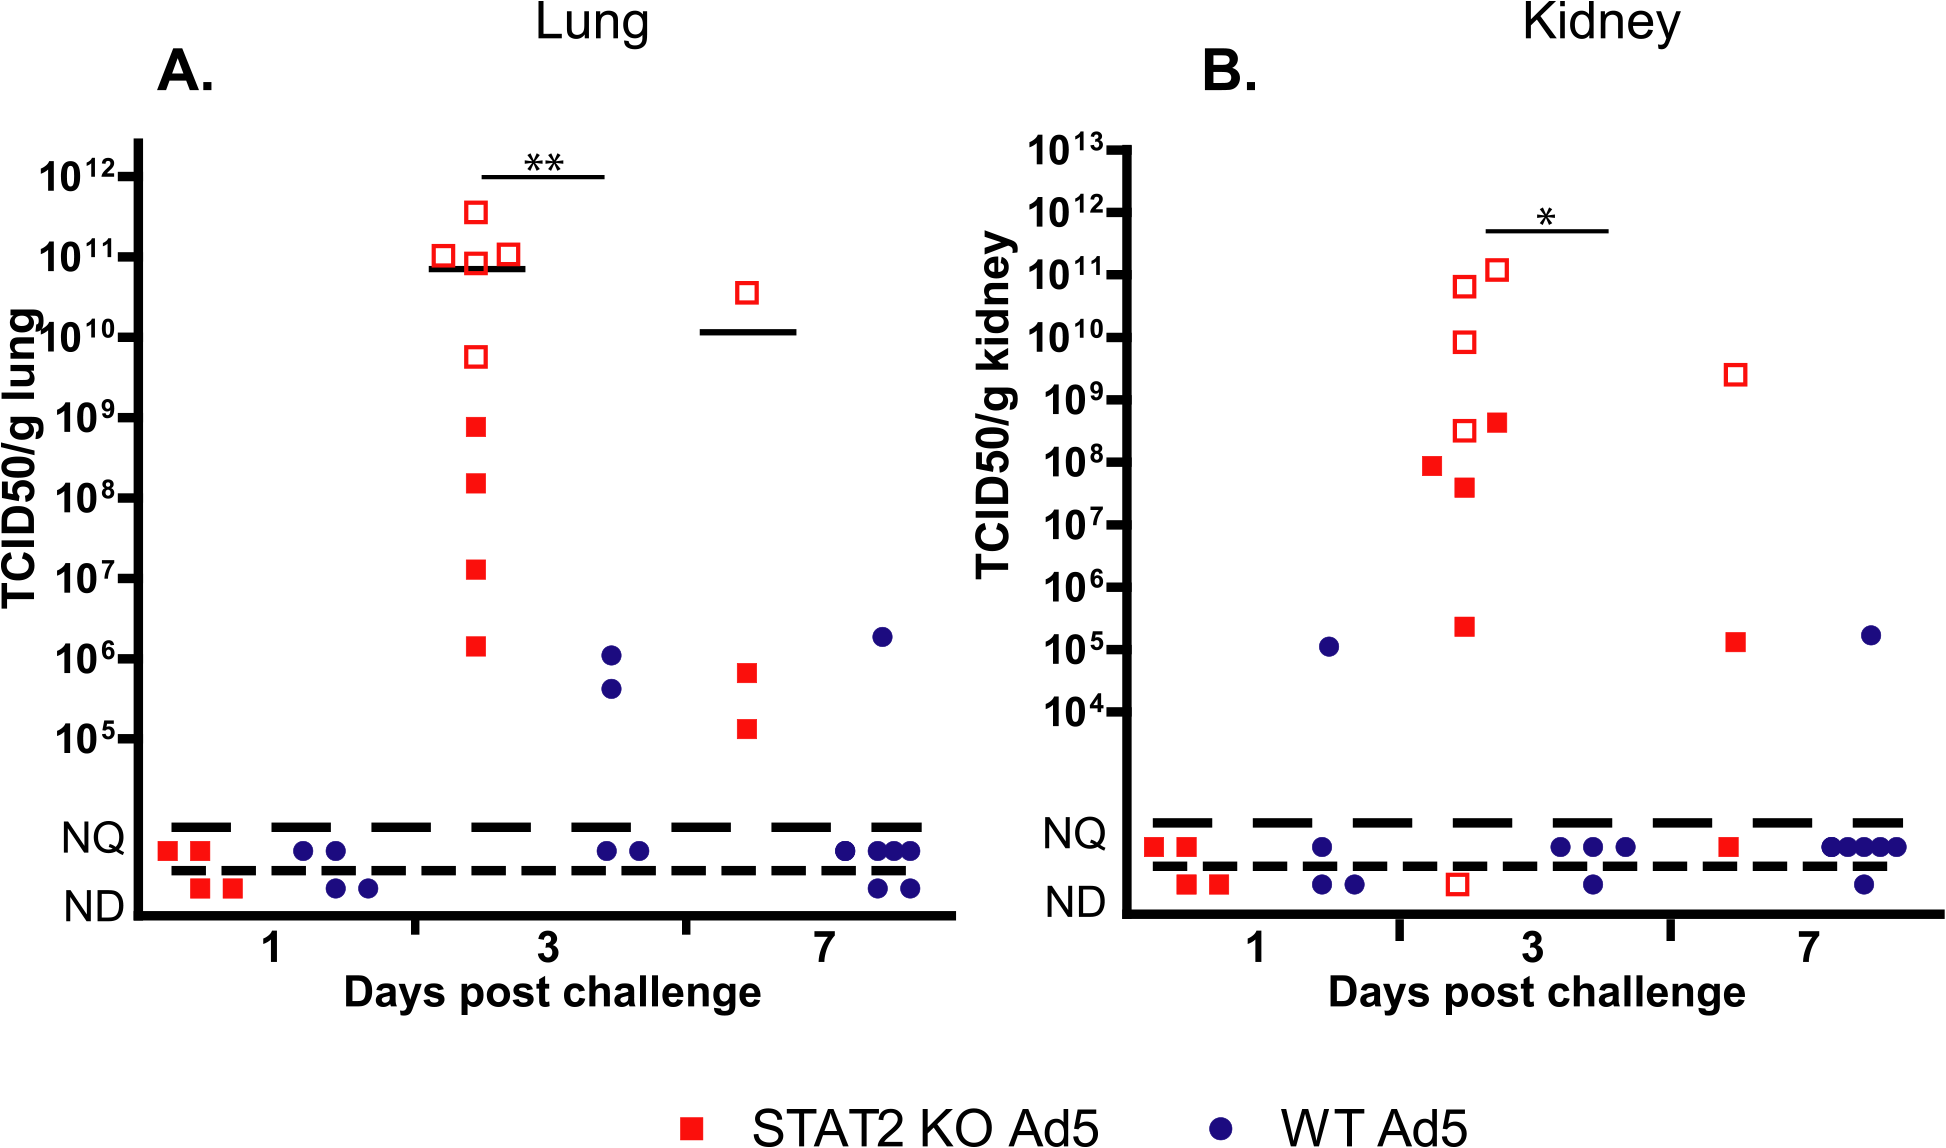 The infectious virus load in the lung (A) and kidney (B) of STAT2 KO hamsters is elevated after intravenous infection with Ad5 compared to wt hamsters.